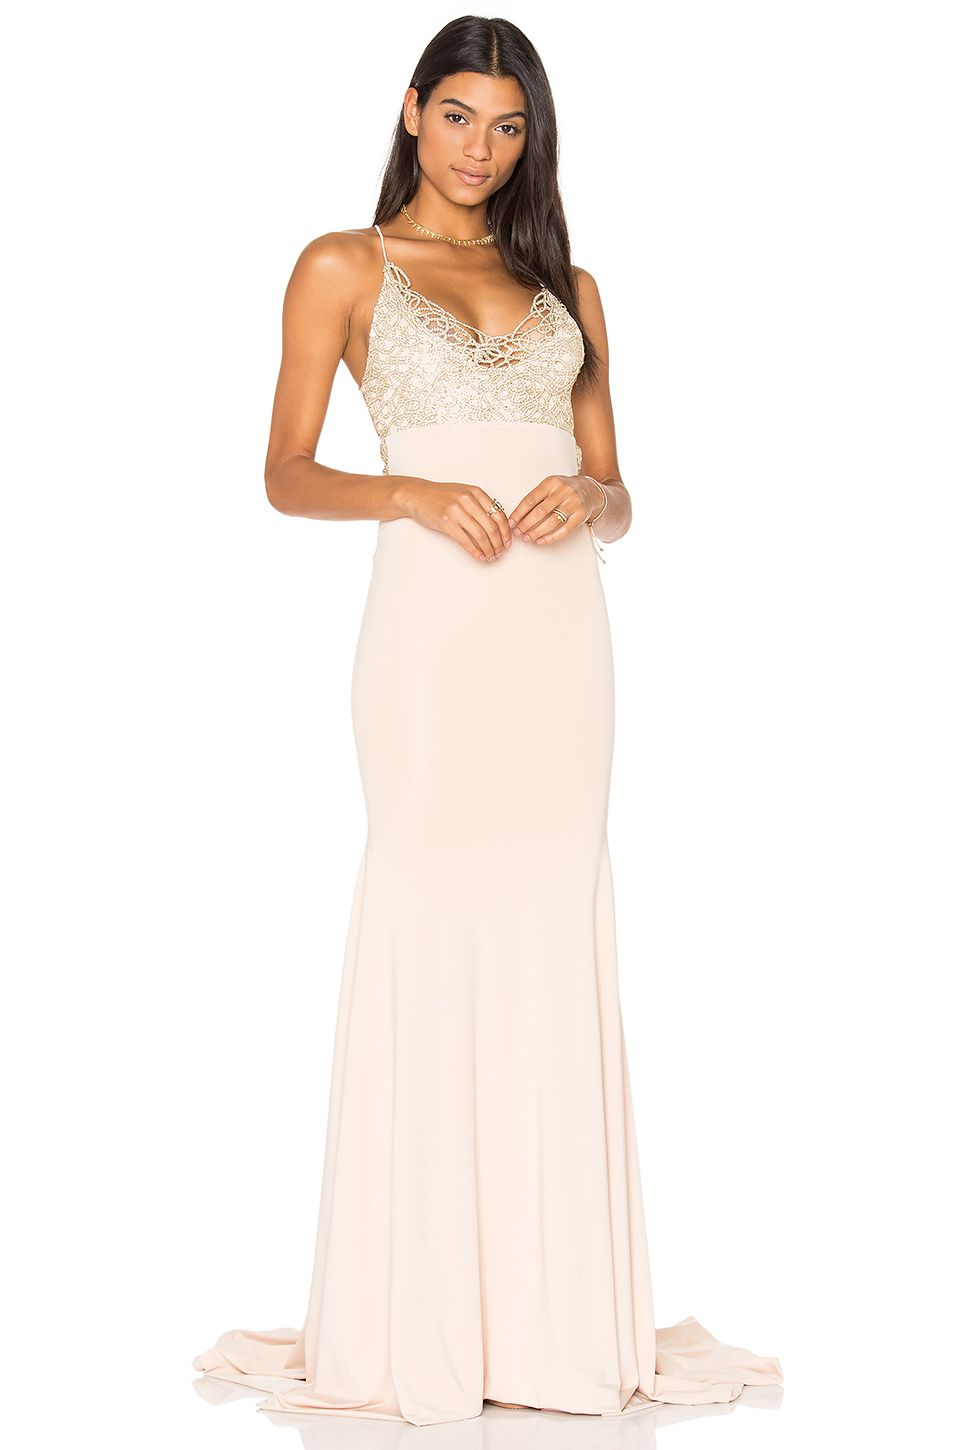 Gemeli Jay Co Gown In Gold Blossom Revolve